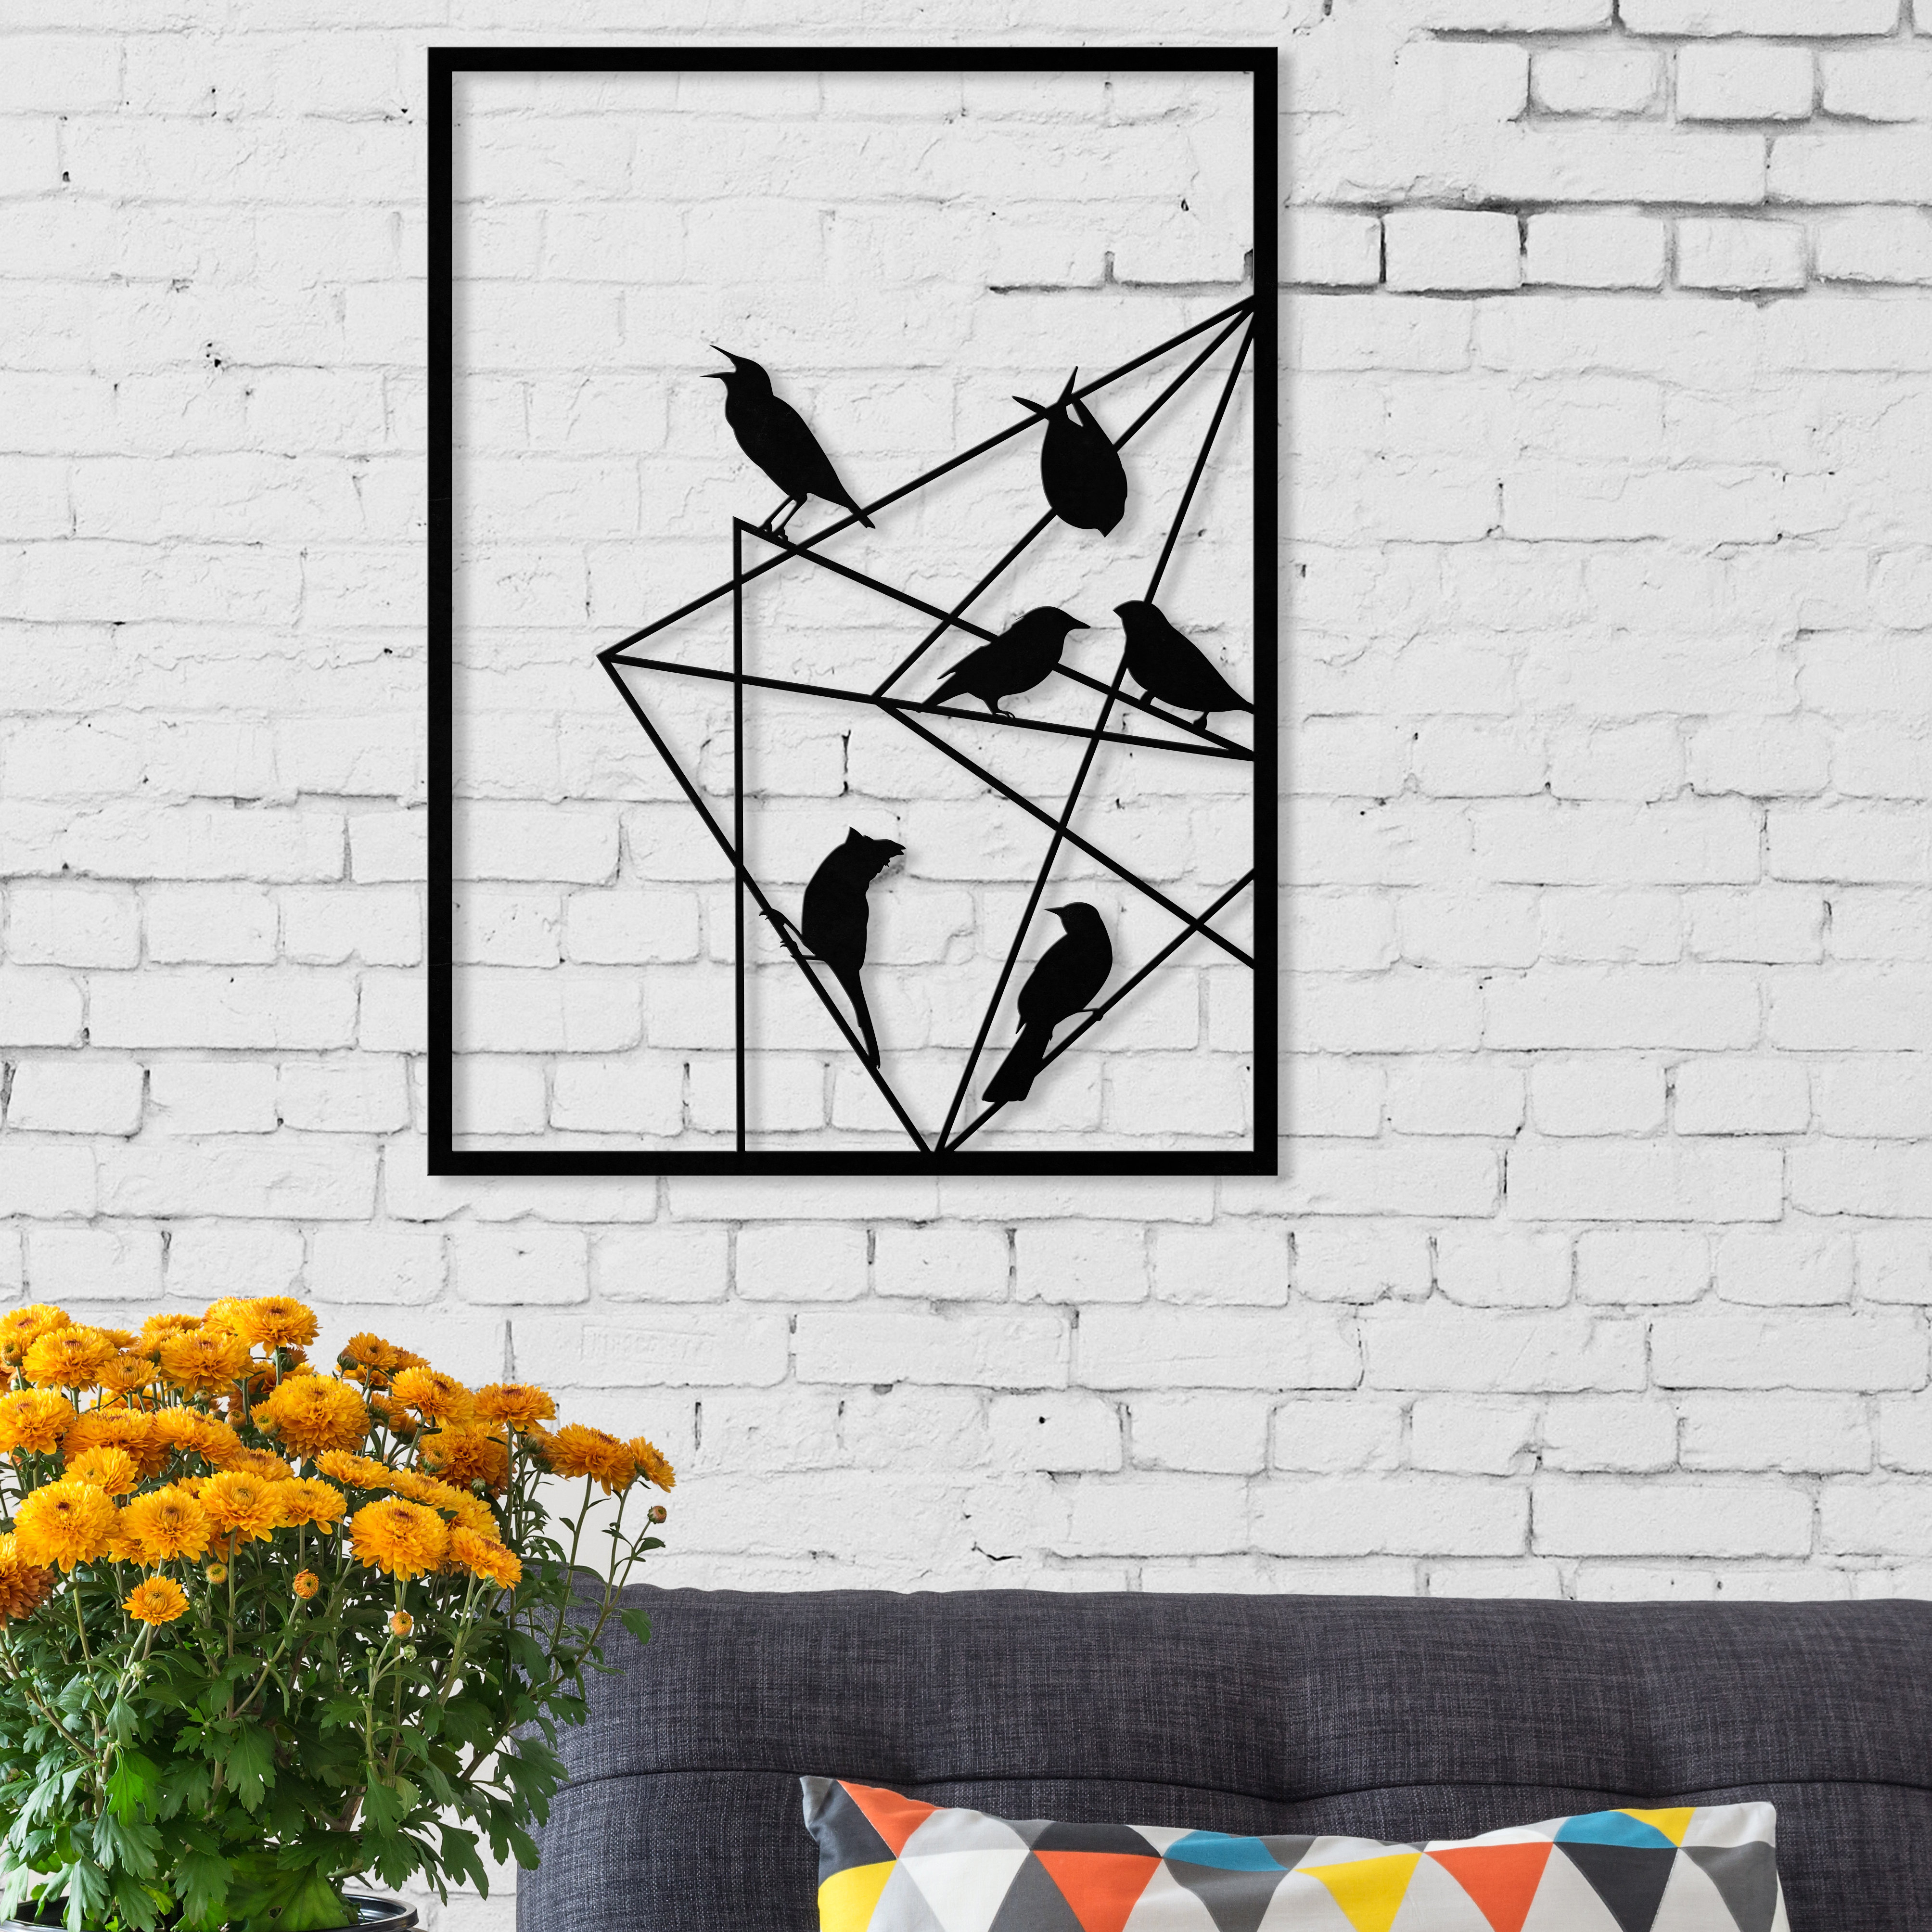 Allmodern Pertaining To Mariposa 9 Piece Wall Decor (View 17 of 20)